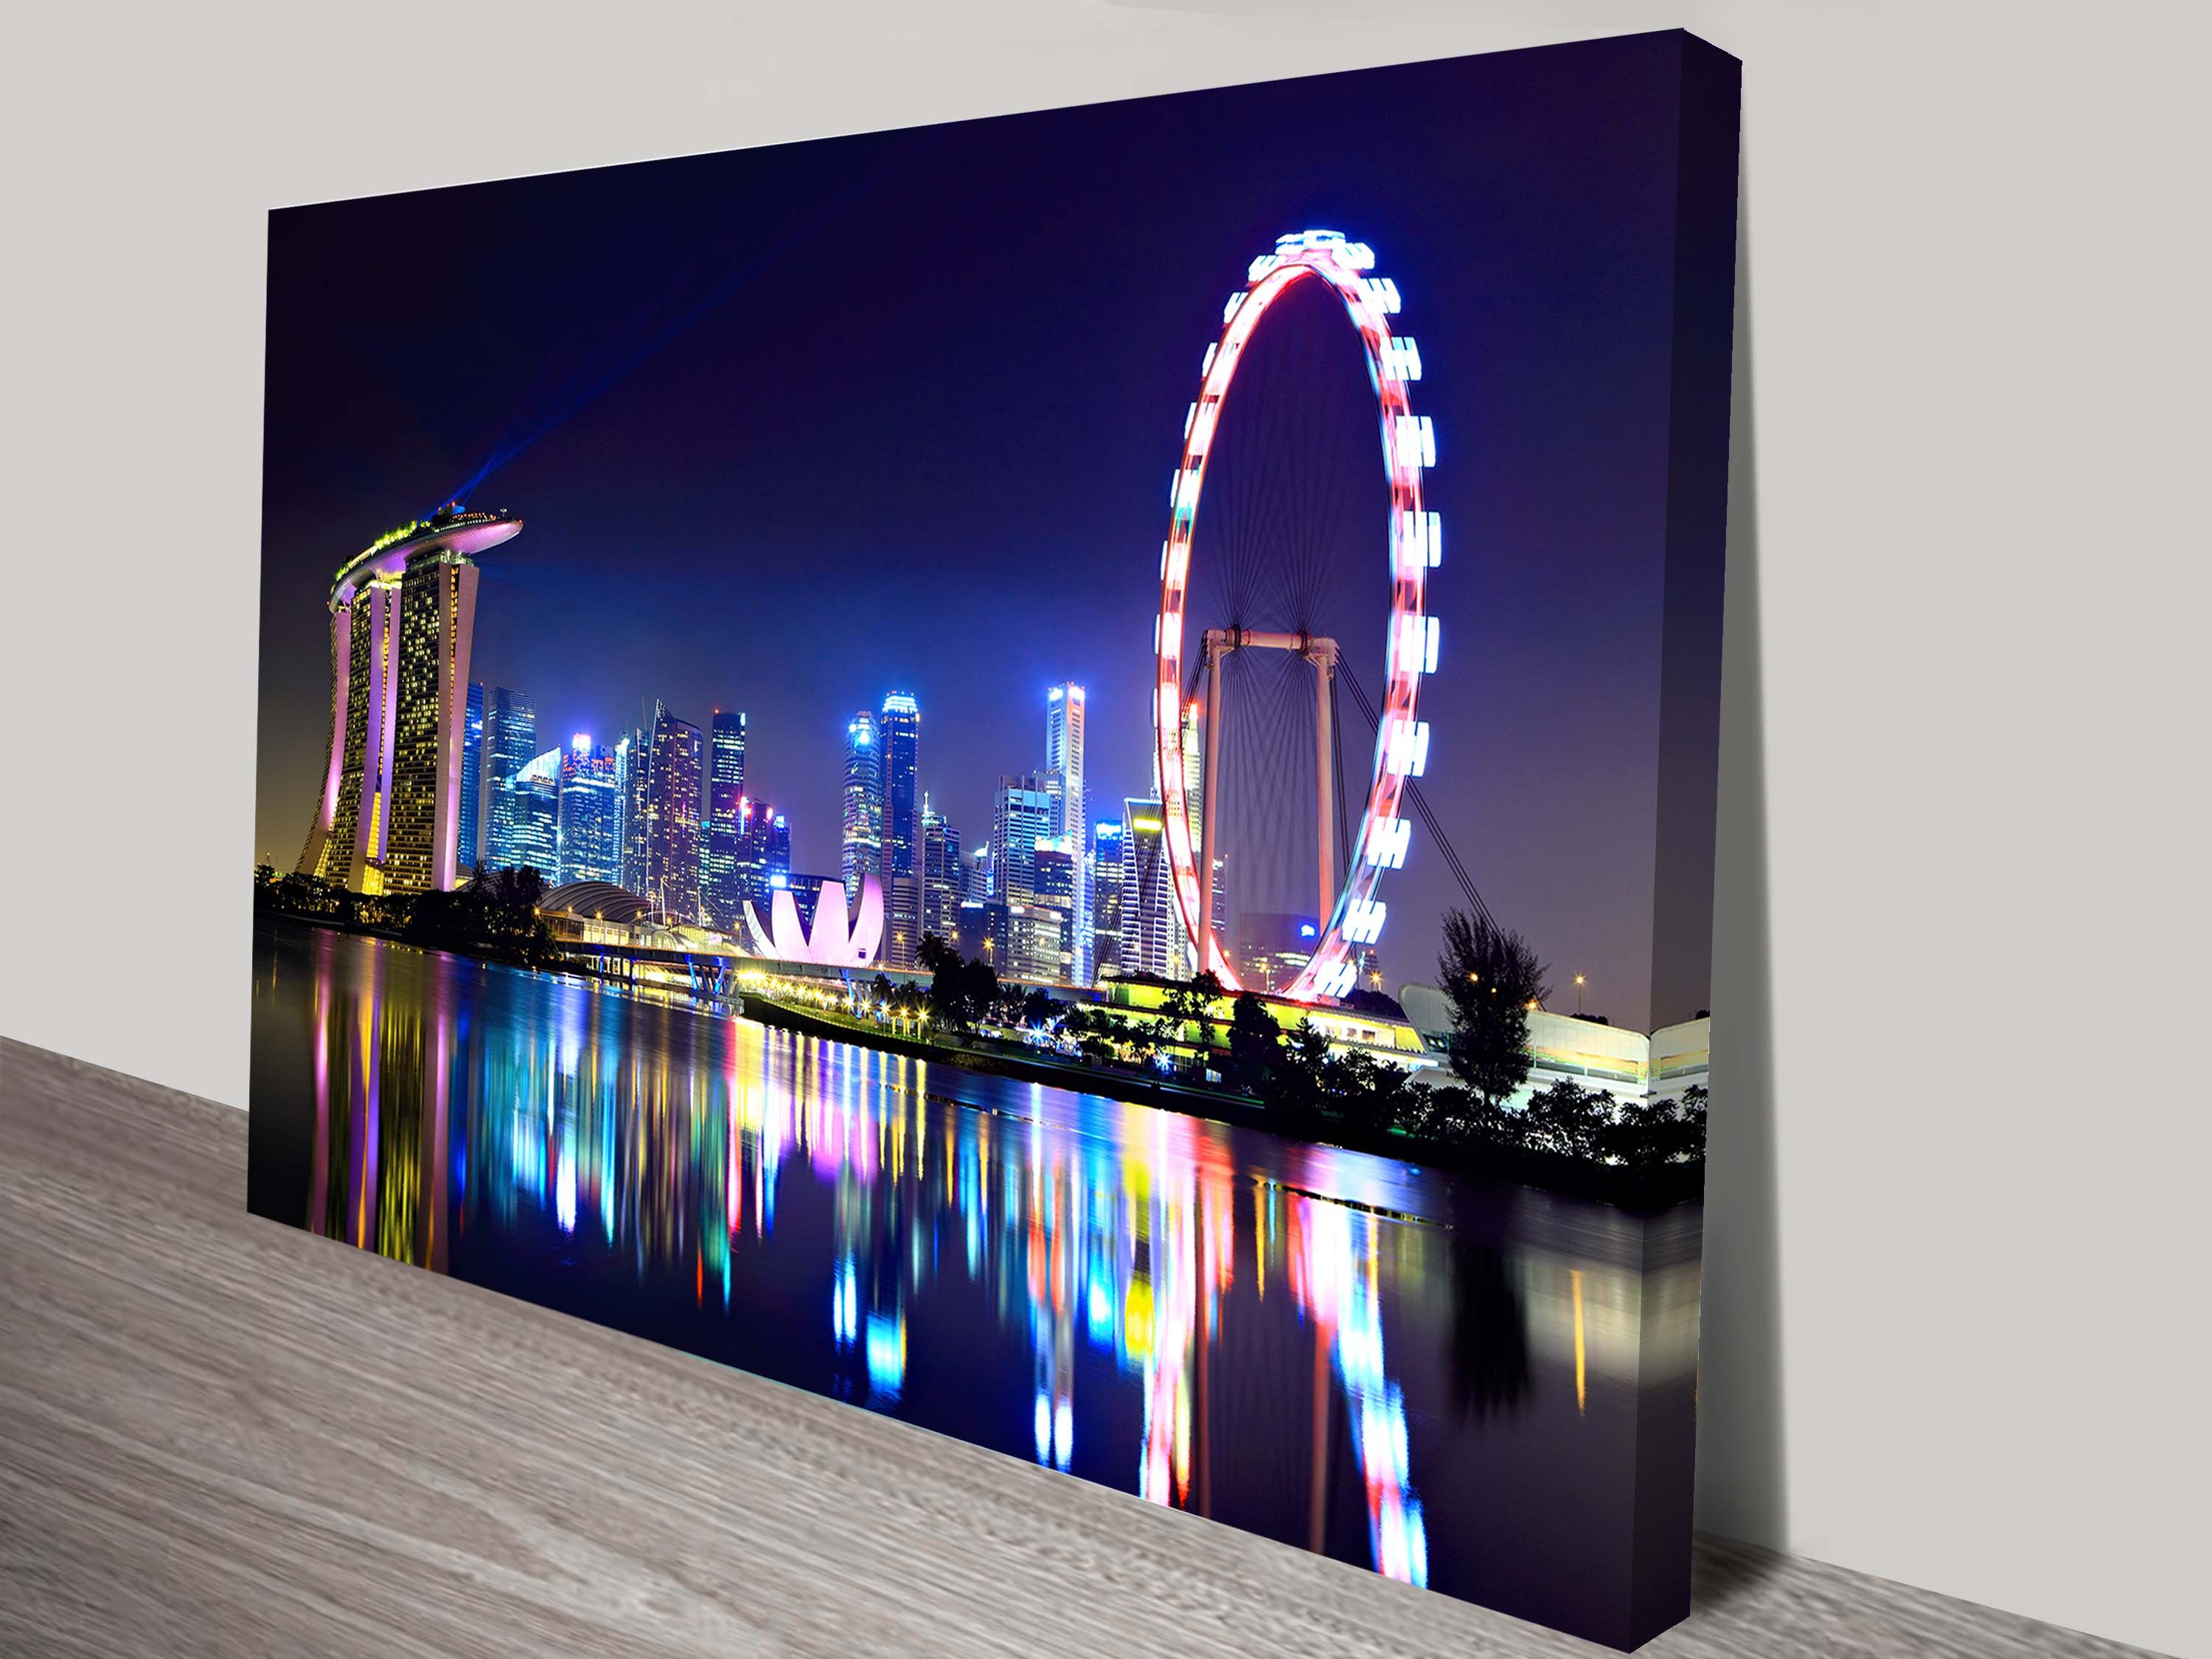 This is a stretched canvas print of the Singapore City Skyline at night